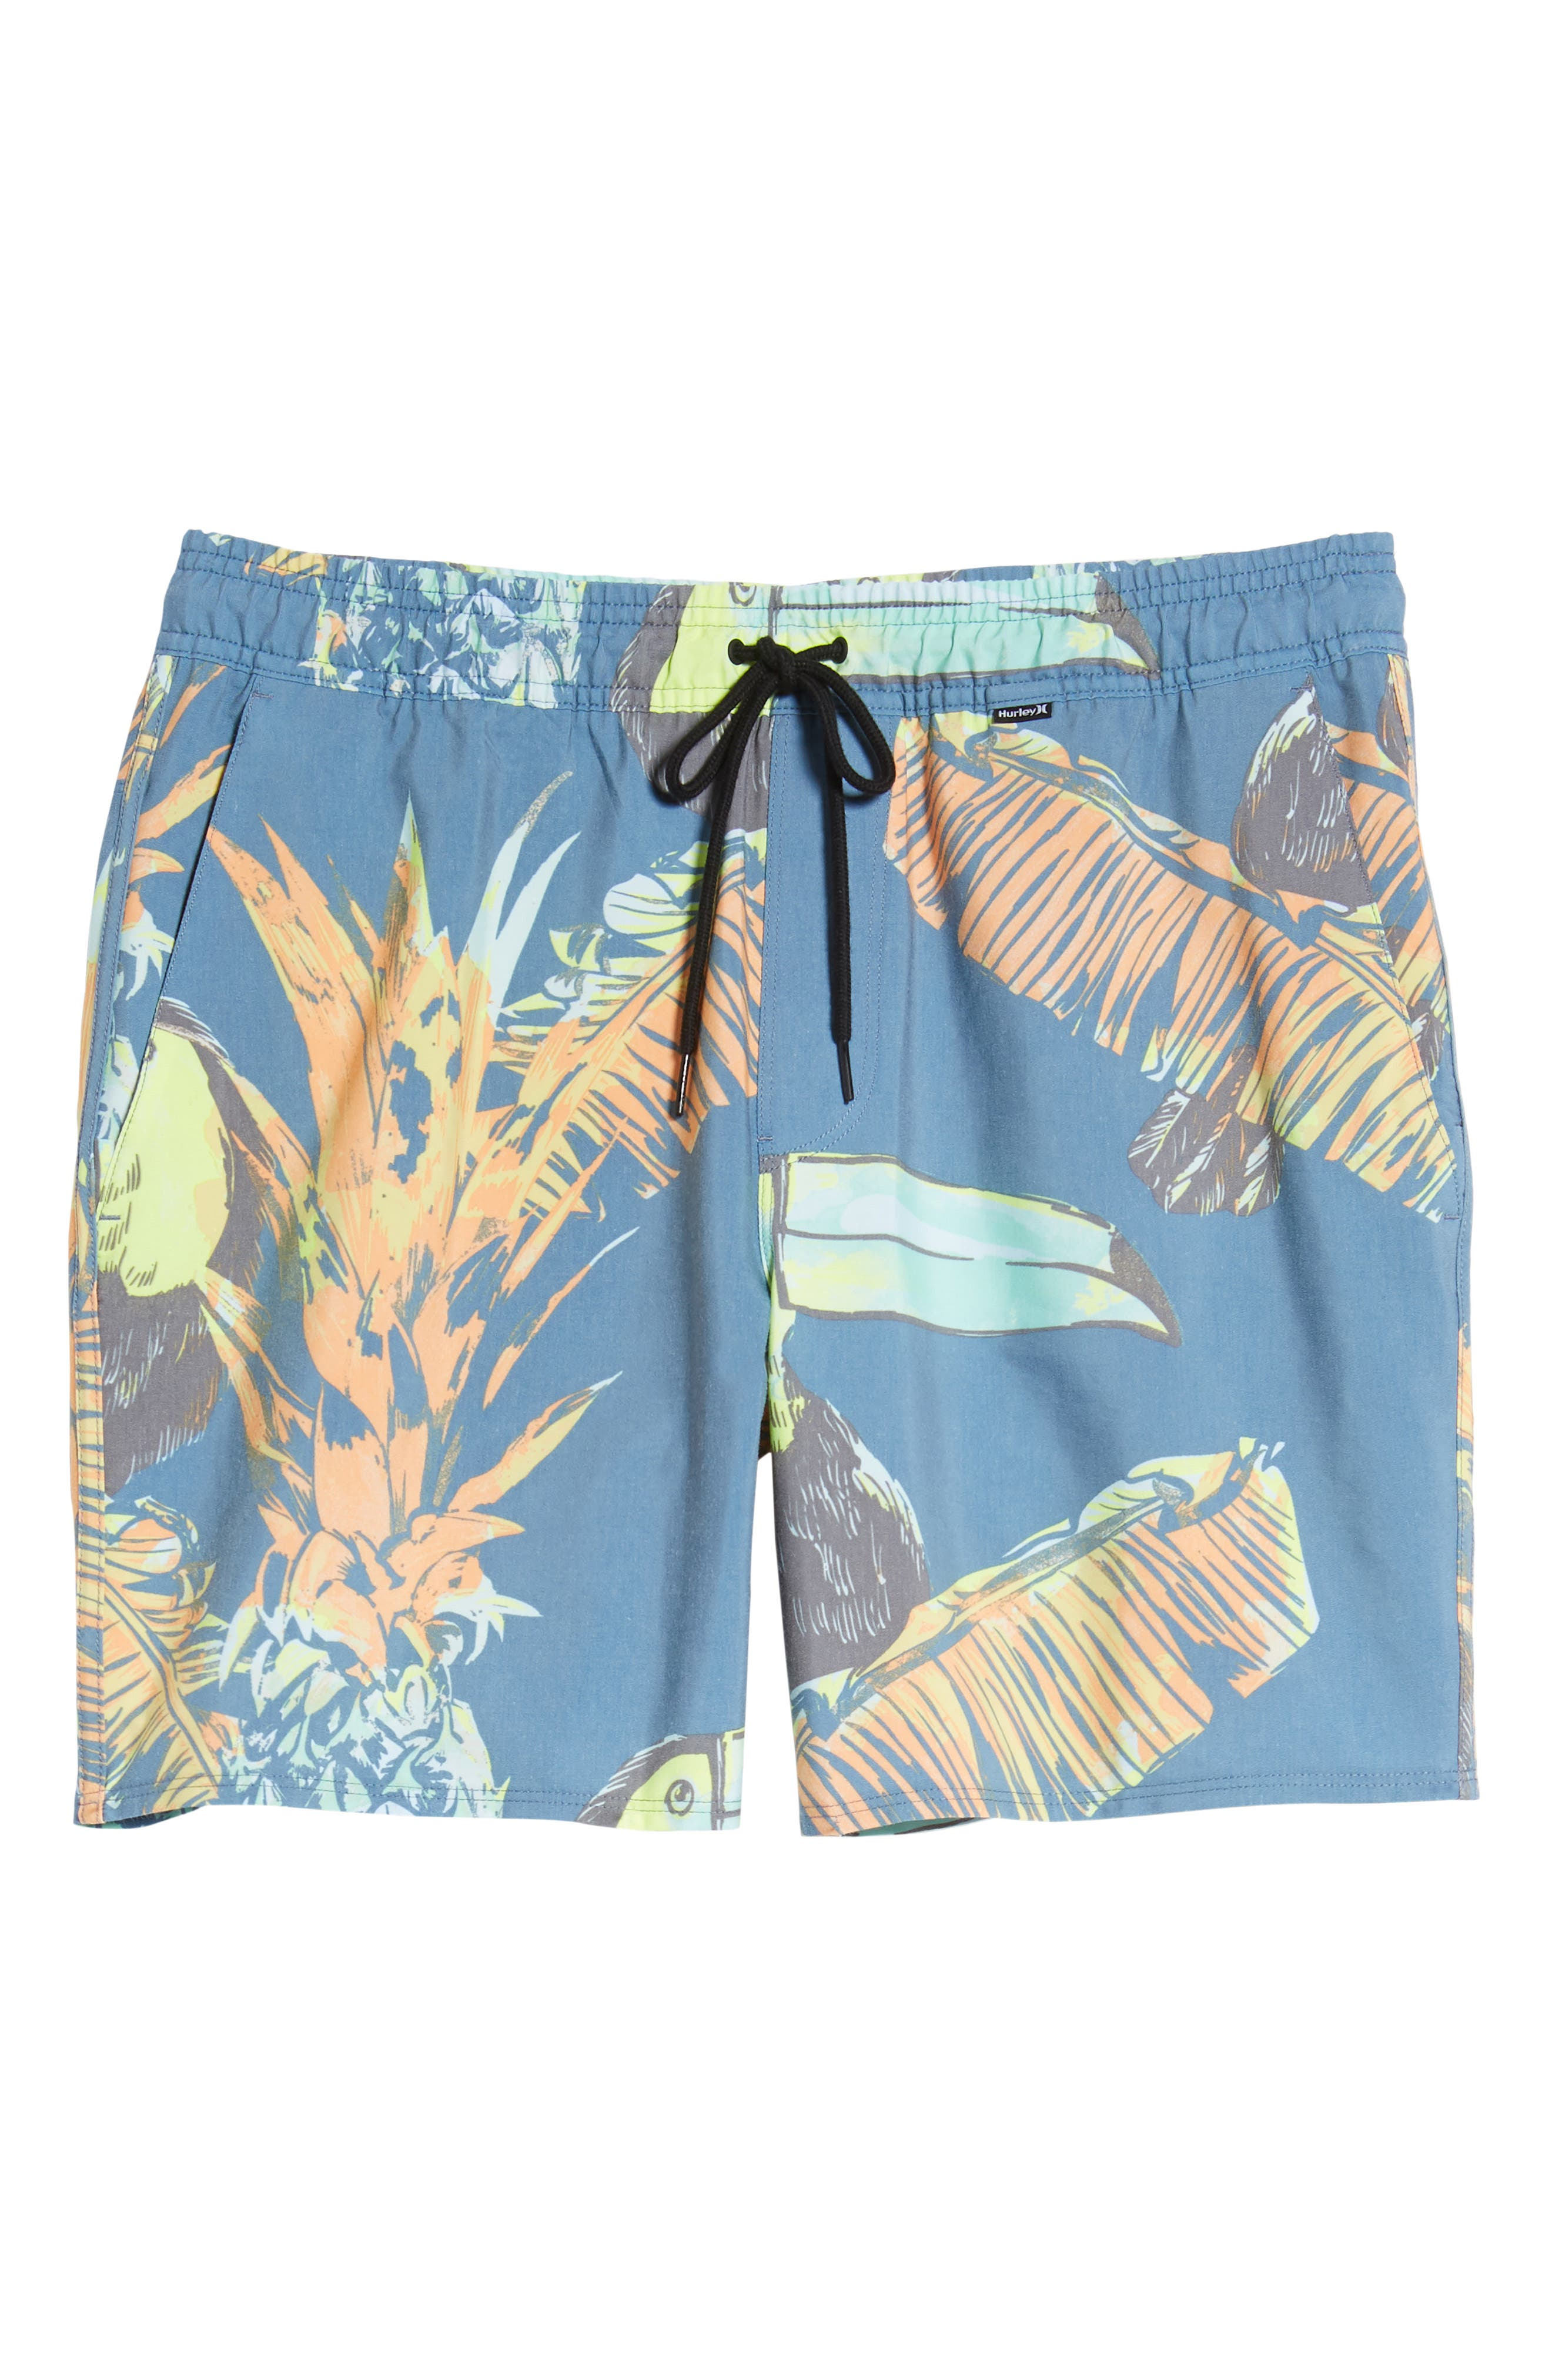 Paradise Volley Board Shorts,                             Alternate thumbnail 6, color,                             Blue Force